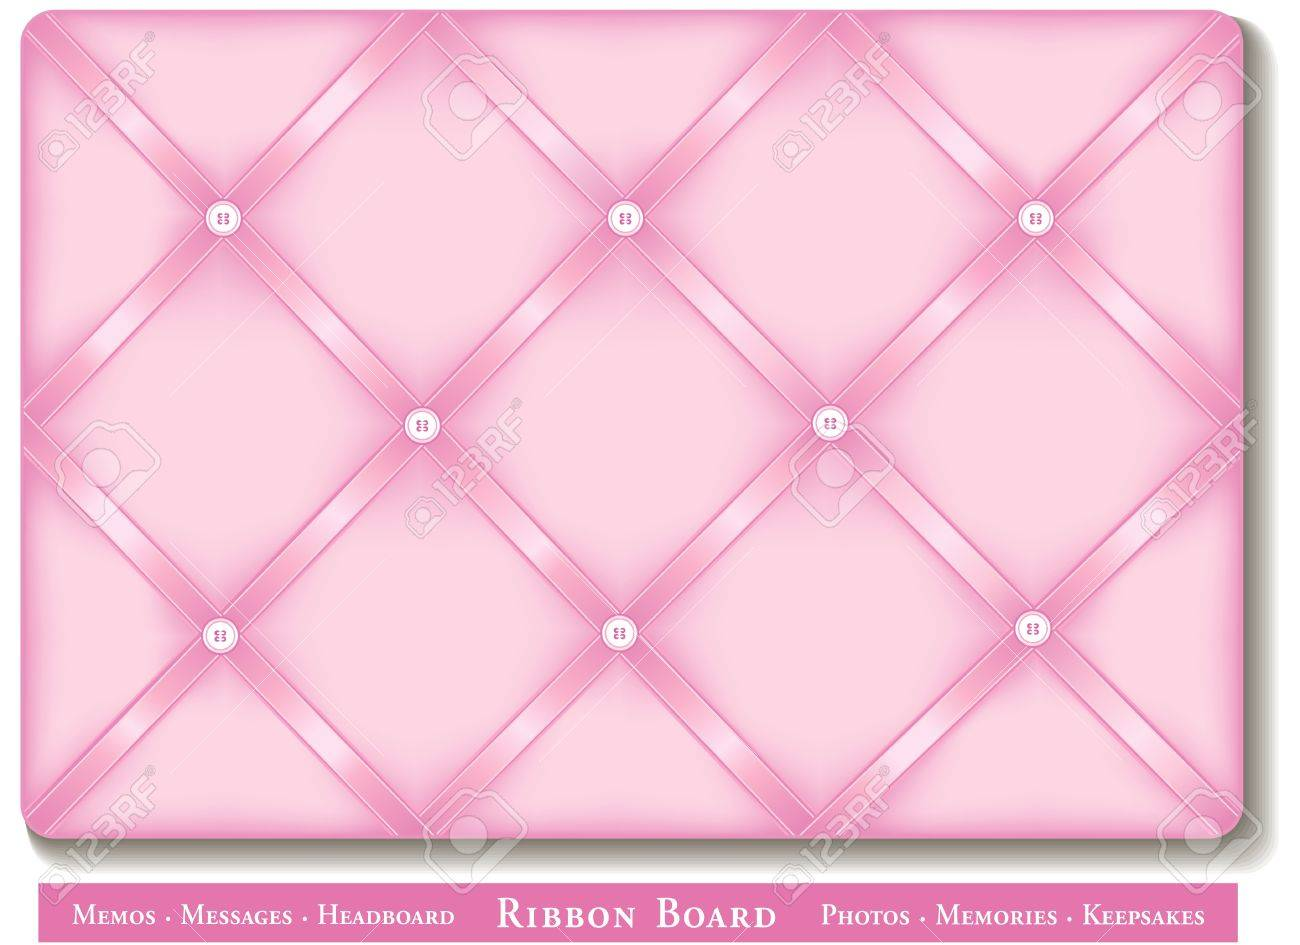 Ribbon Bulletin Board Pastel Pink Satin Ribbons On French Style